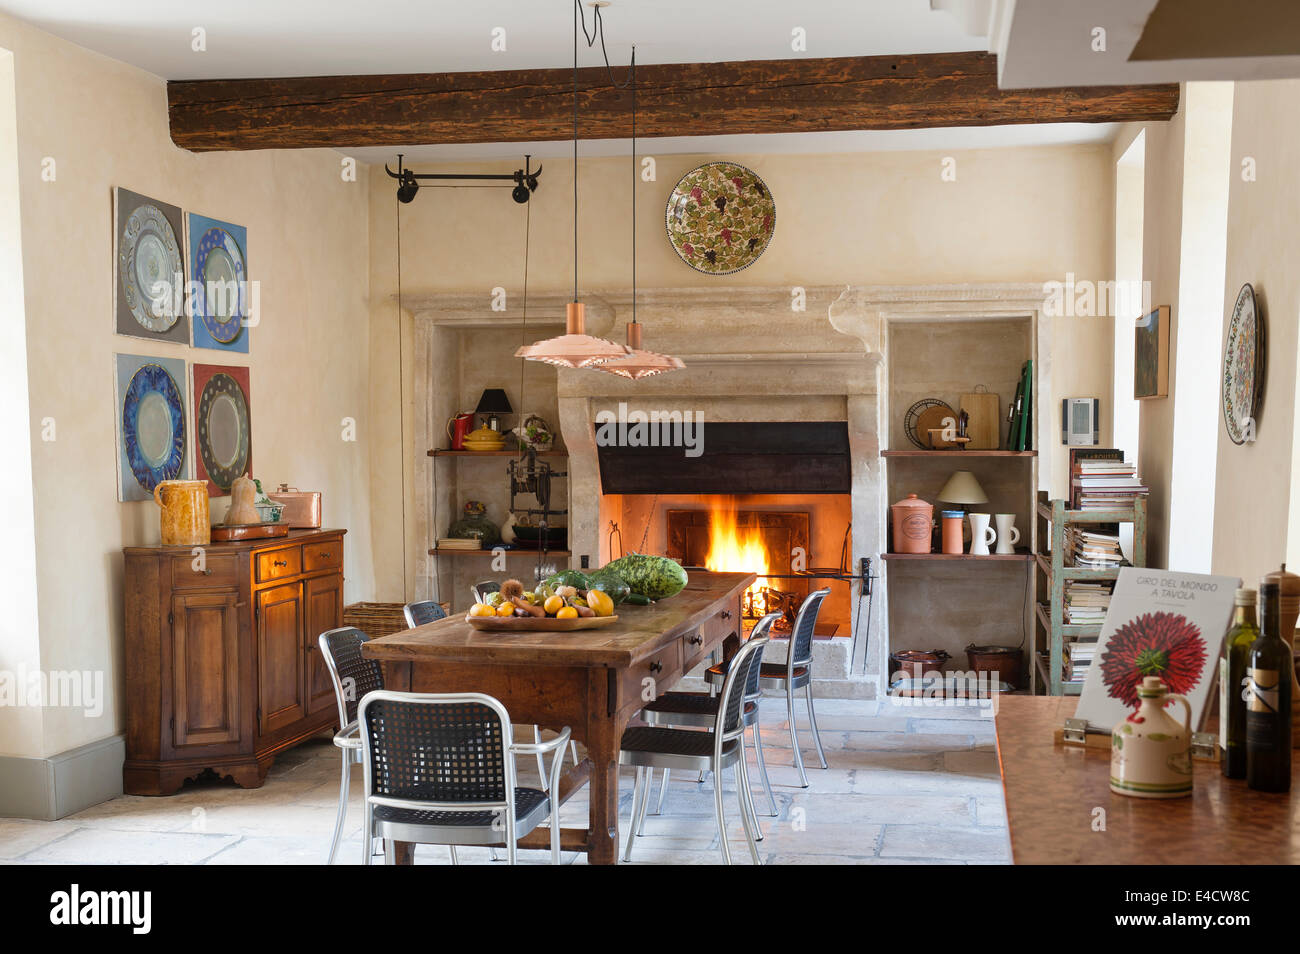 Provencal Kitchen With Large Stone Fireplace And Wooden